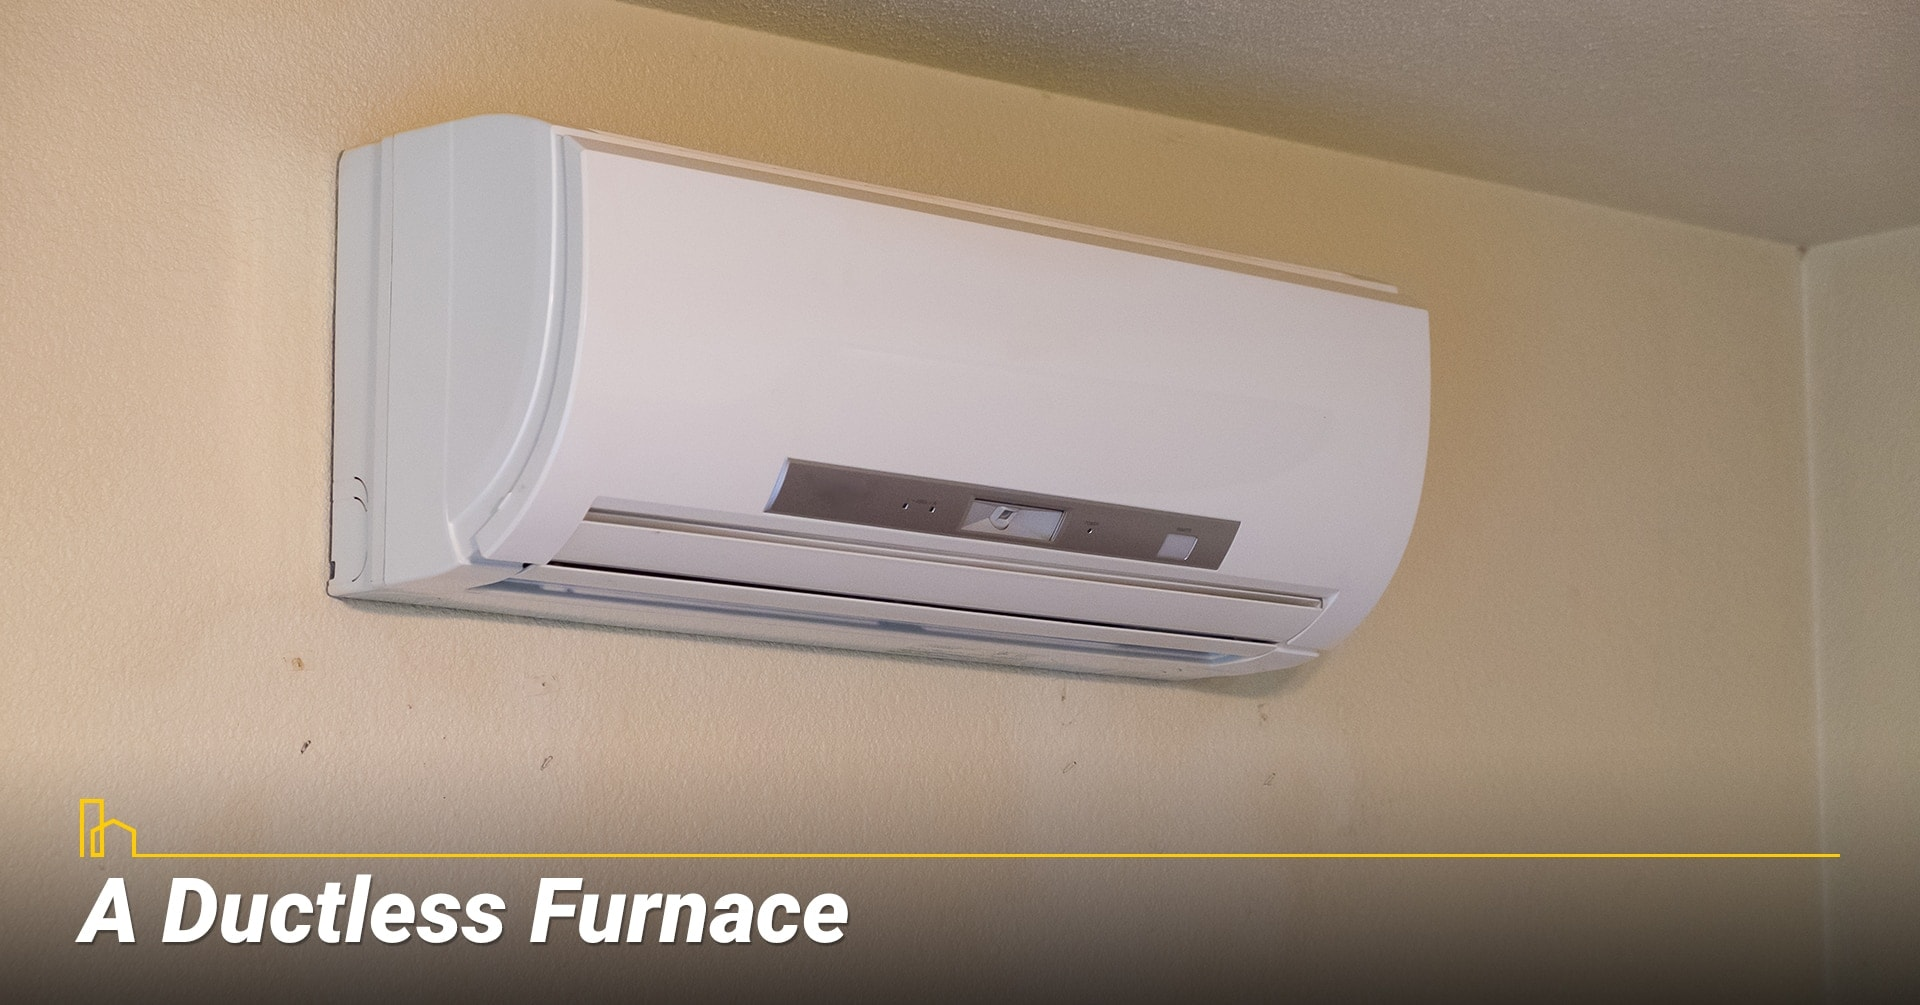 A Ductless Furnace, heat your home with ductless furnace